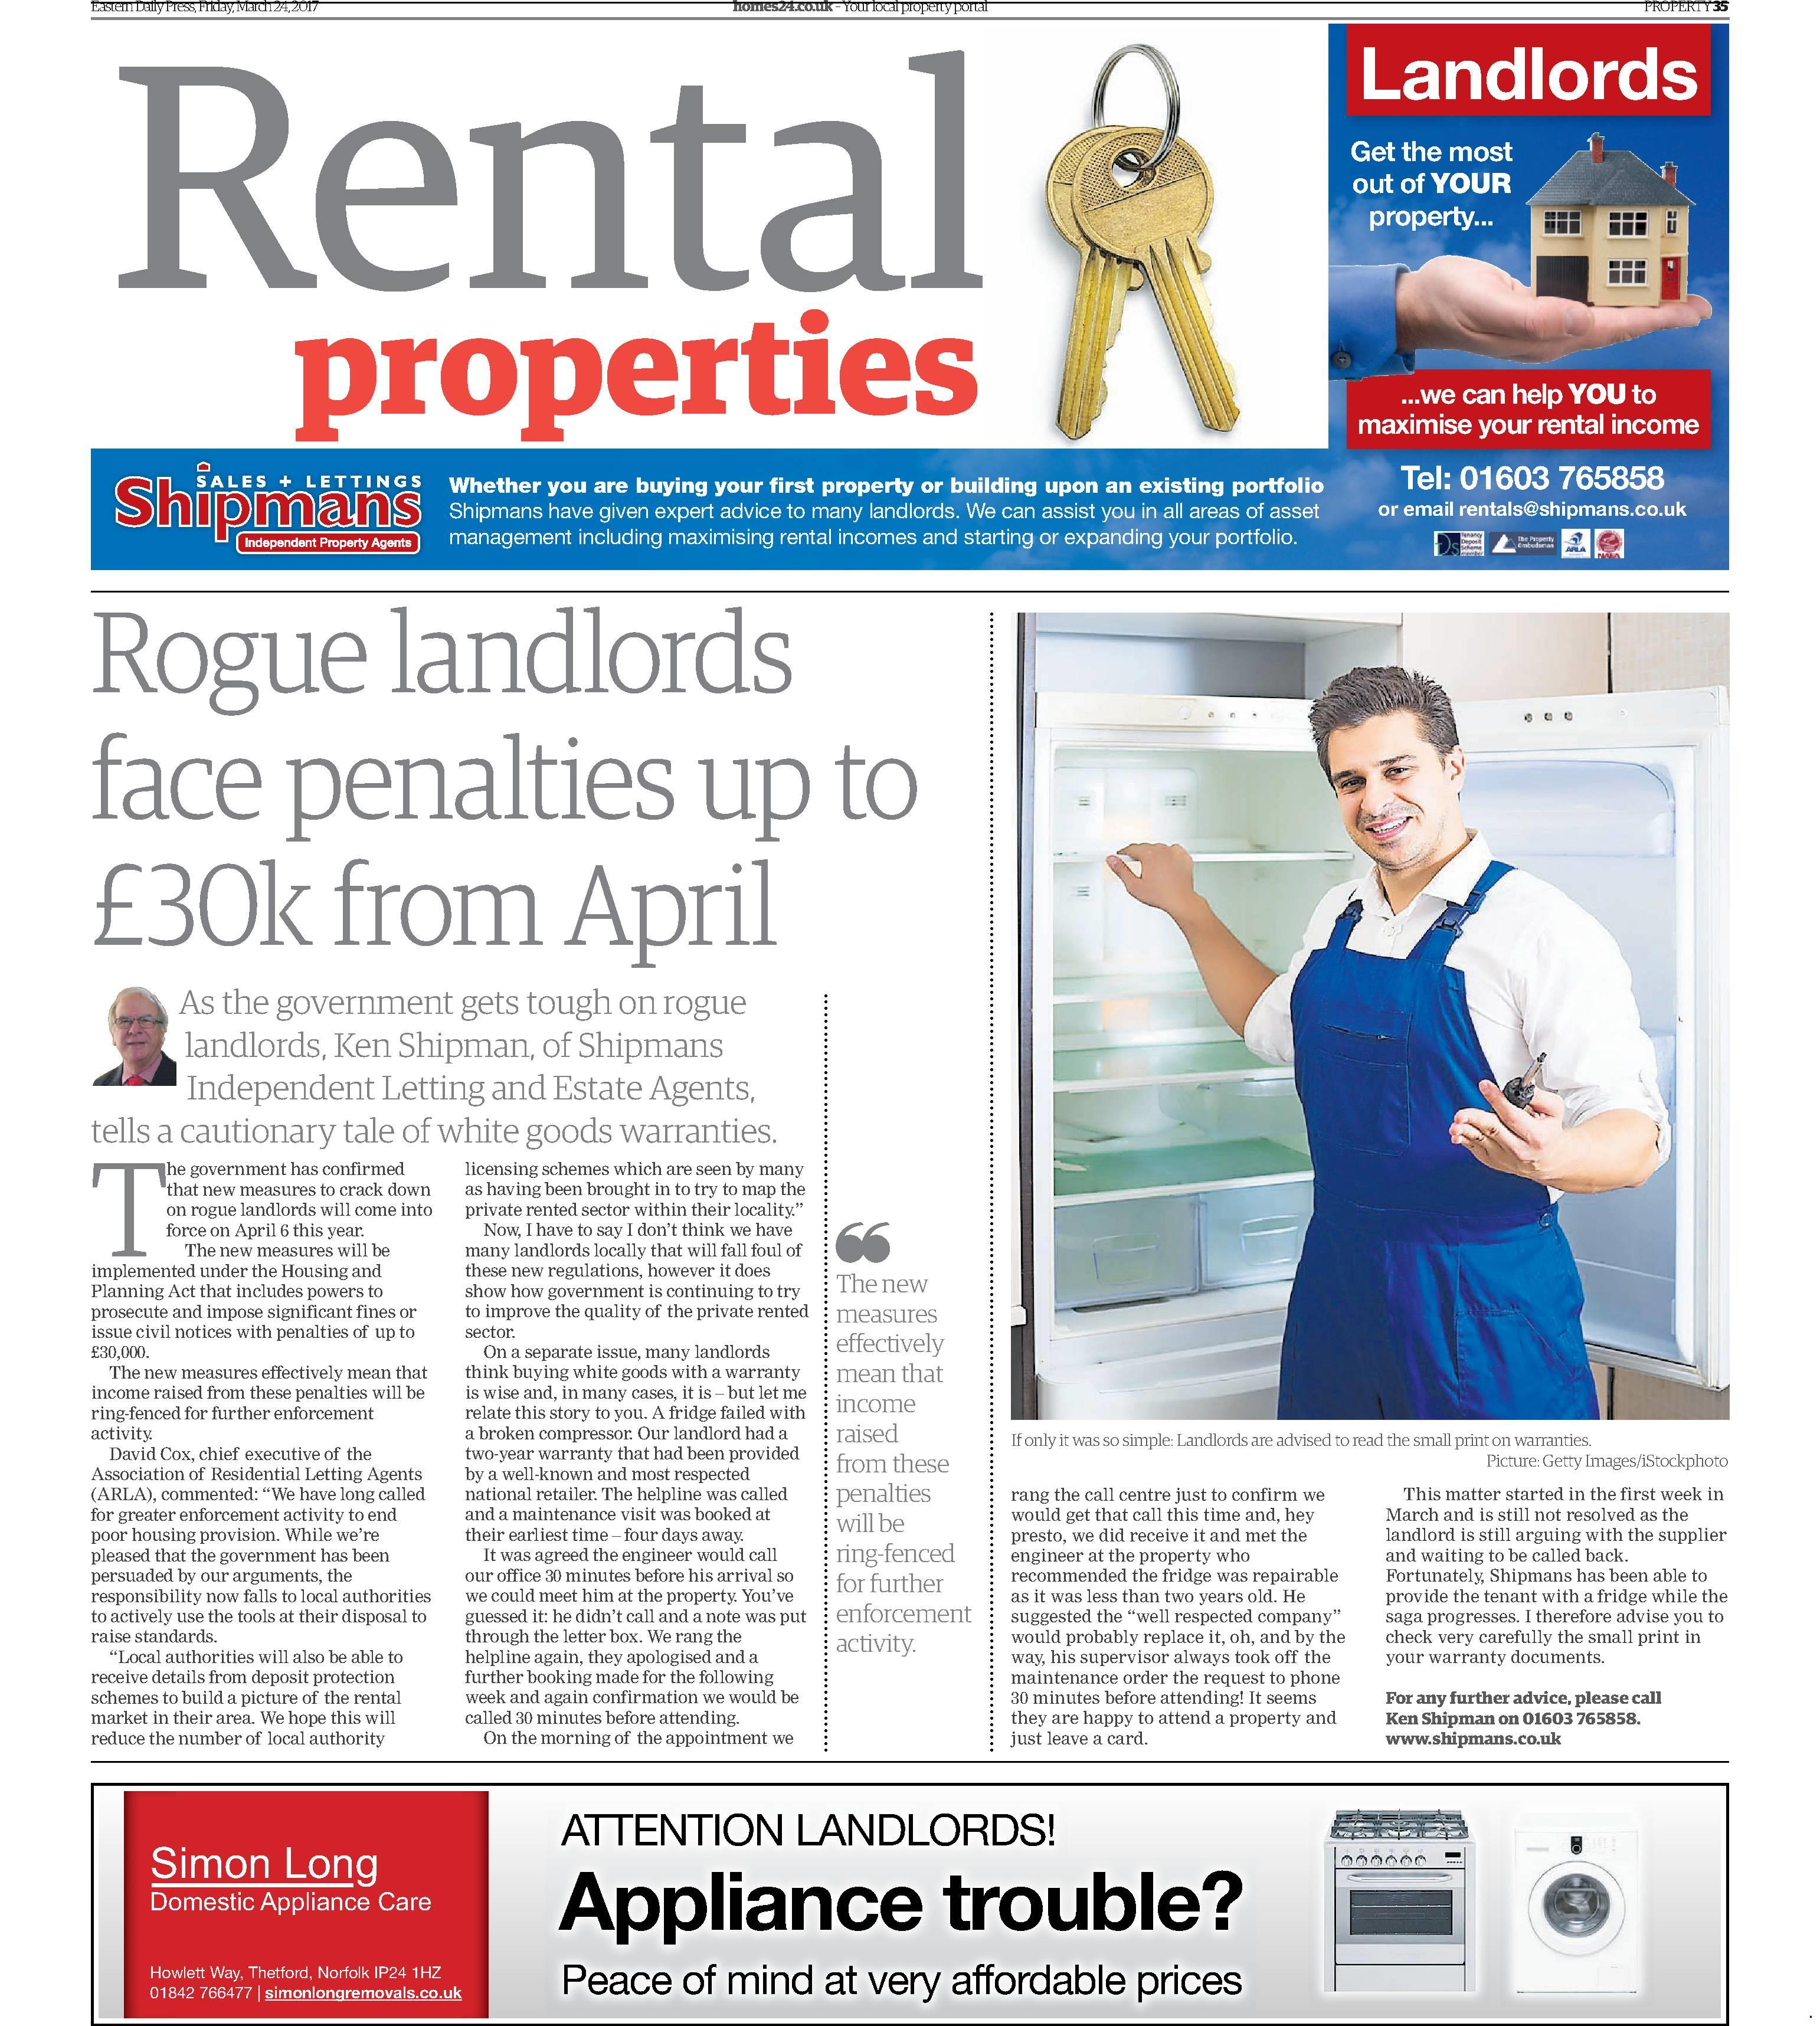 Rogue landlords face penalties up to £30k from April